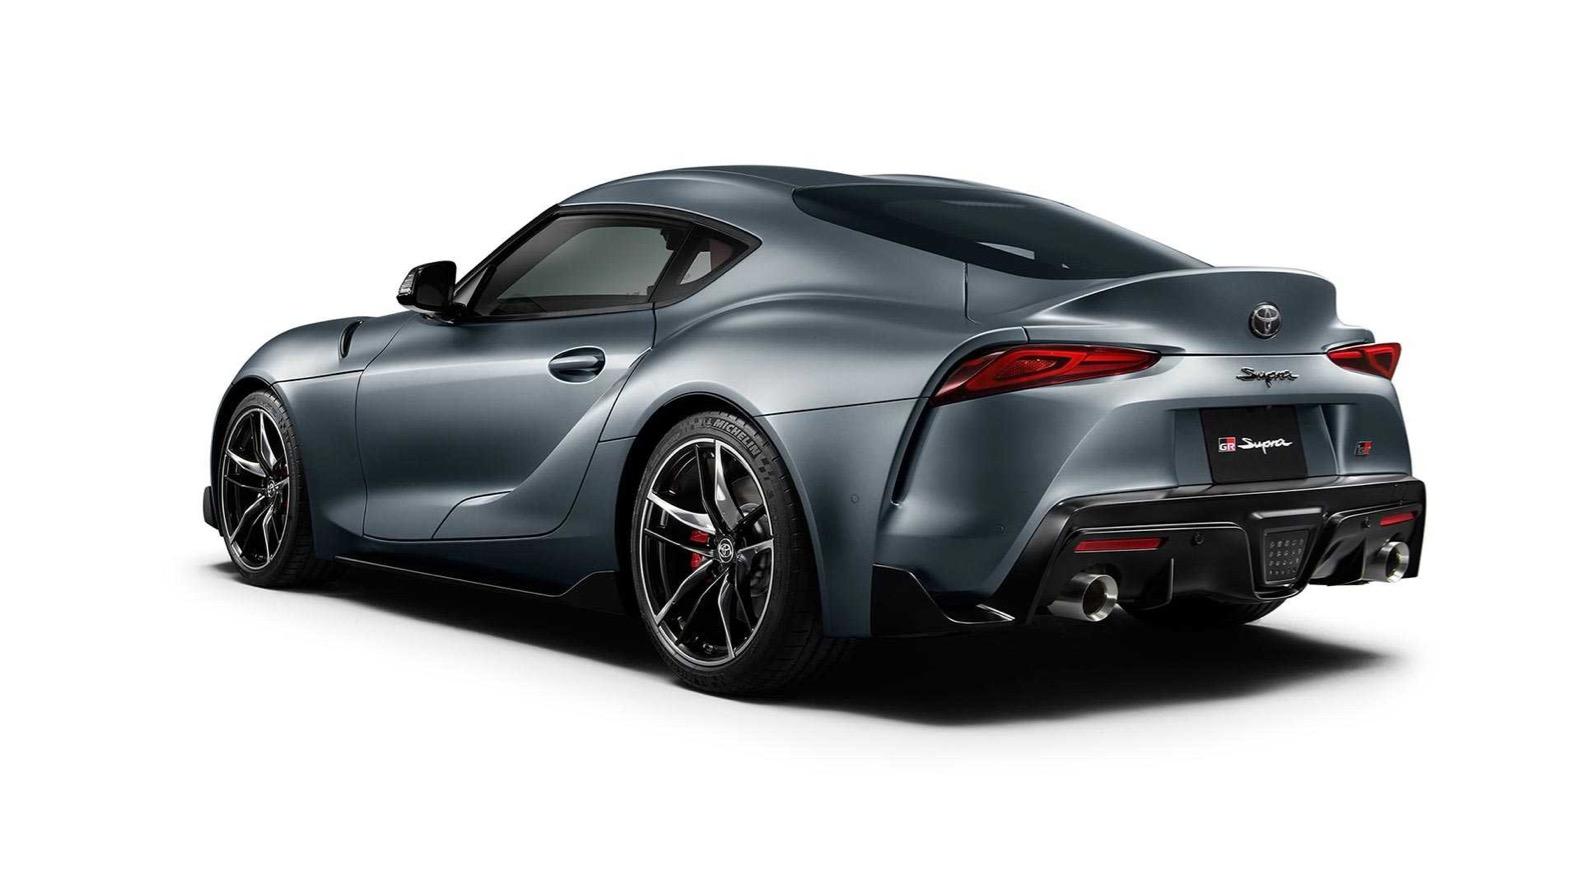 Limited Edition Toyota Supra Is Restricted To Only 24 Units The